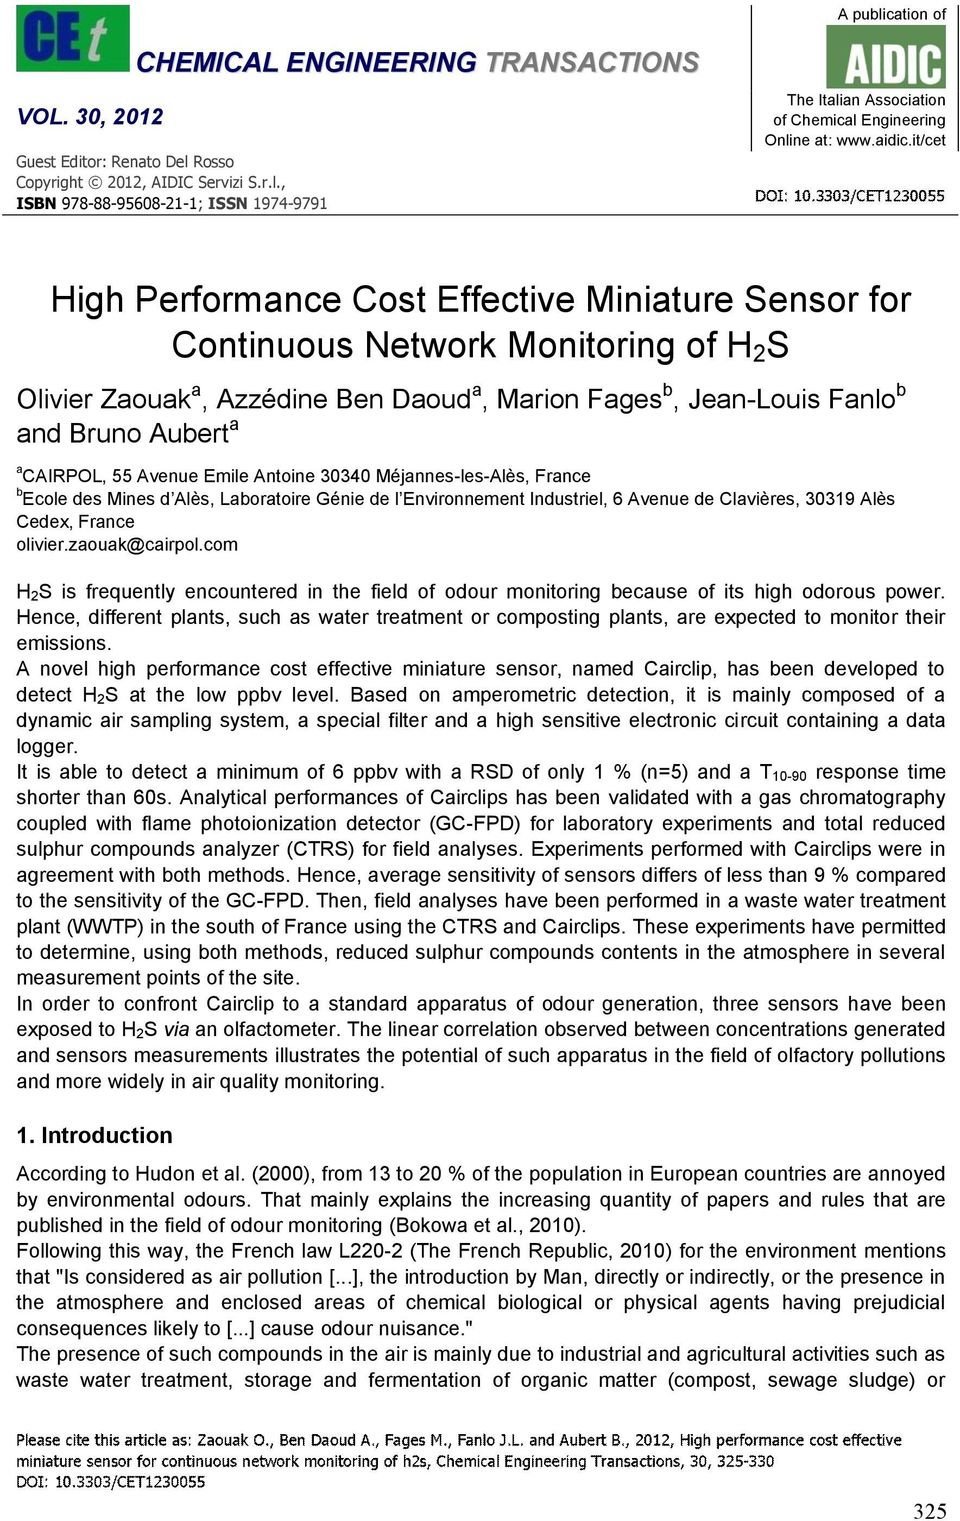 it/cet High Performance Cost Effective Miniature Sensor for Continuous Network Monitoring of H 2 S Olivier Zaouak a, Azzédine Ben Daoud a, Marion Fages b, Jean-Louis Fanlo b and Bruno Aubert a a